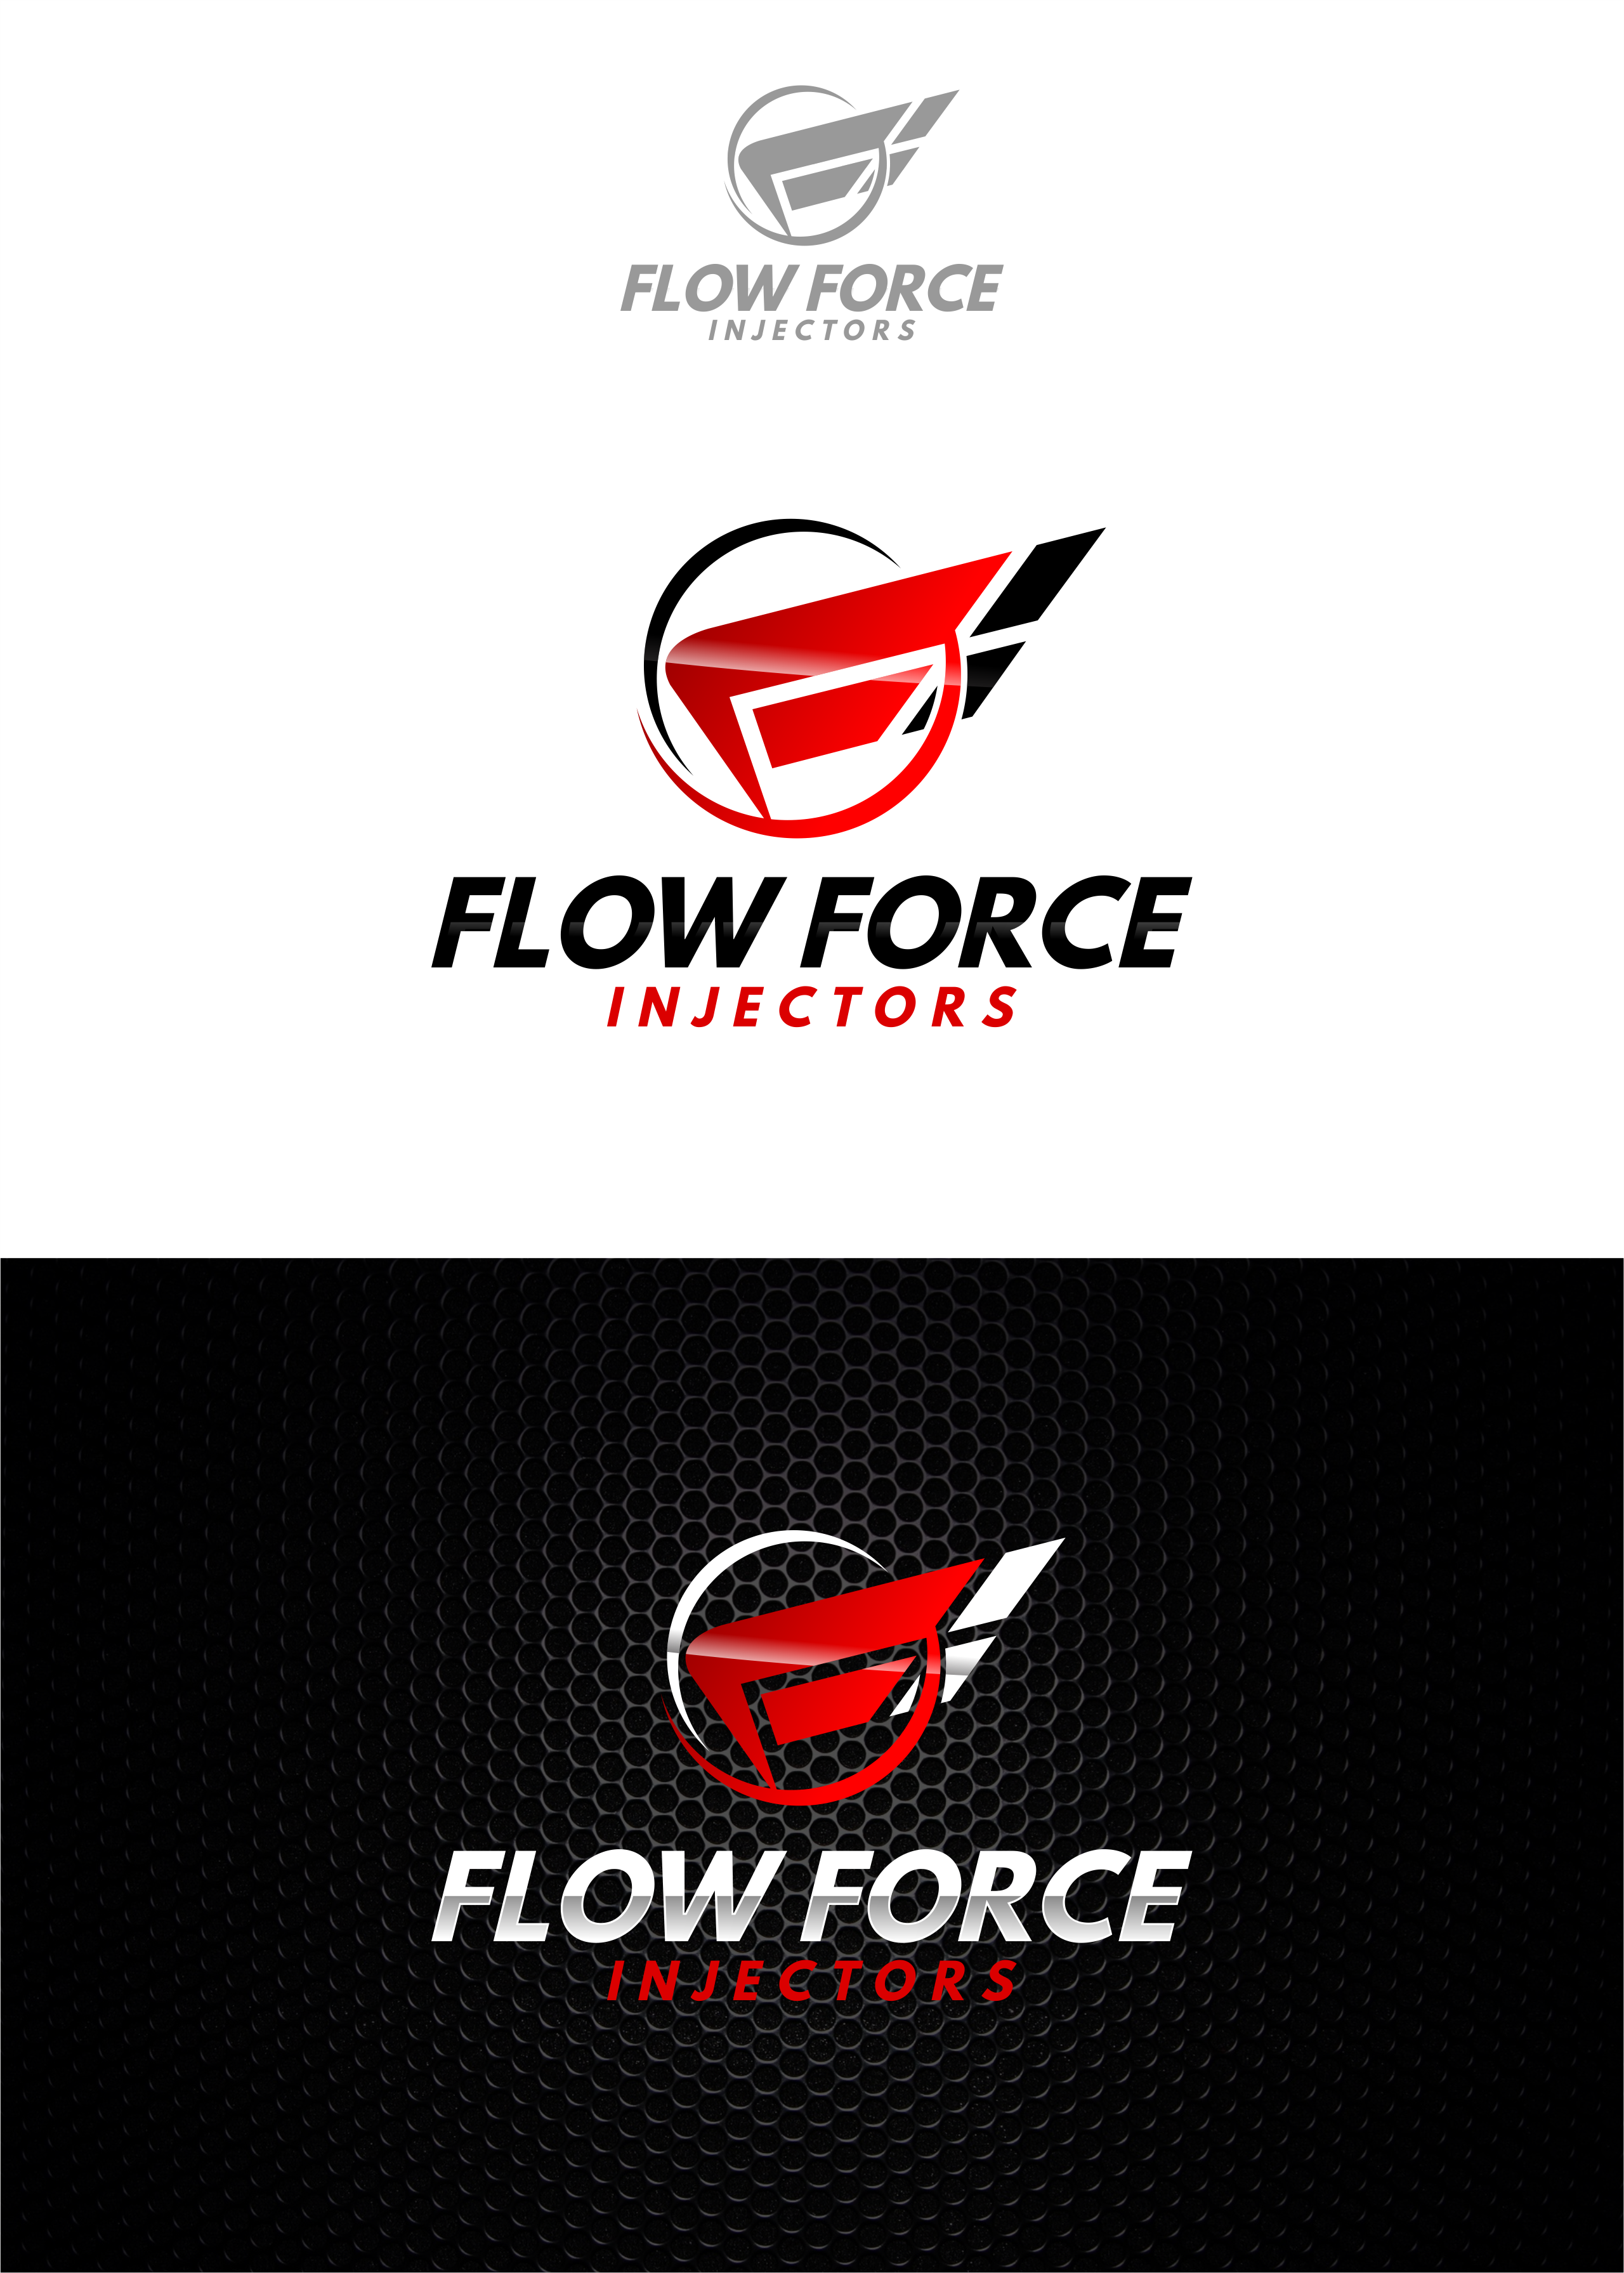 Logo Design by Raymond Garcia - Entry No. 12 in the Logo Design Contest Fun Logo Design for Flow Force Injectors.